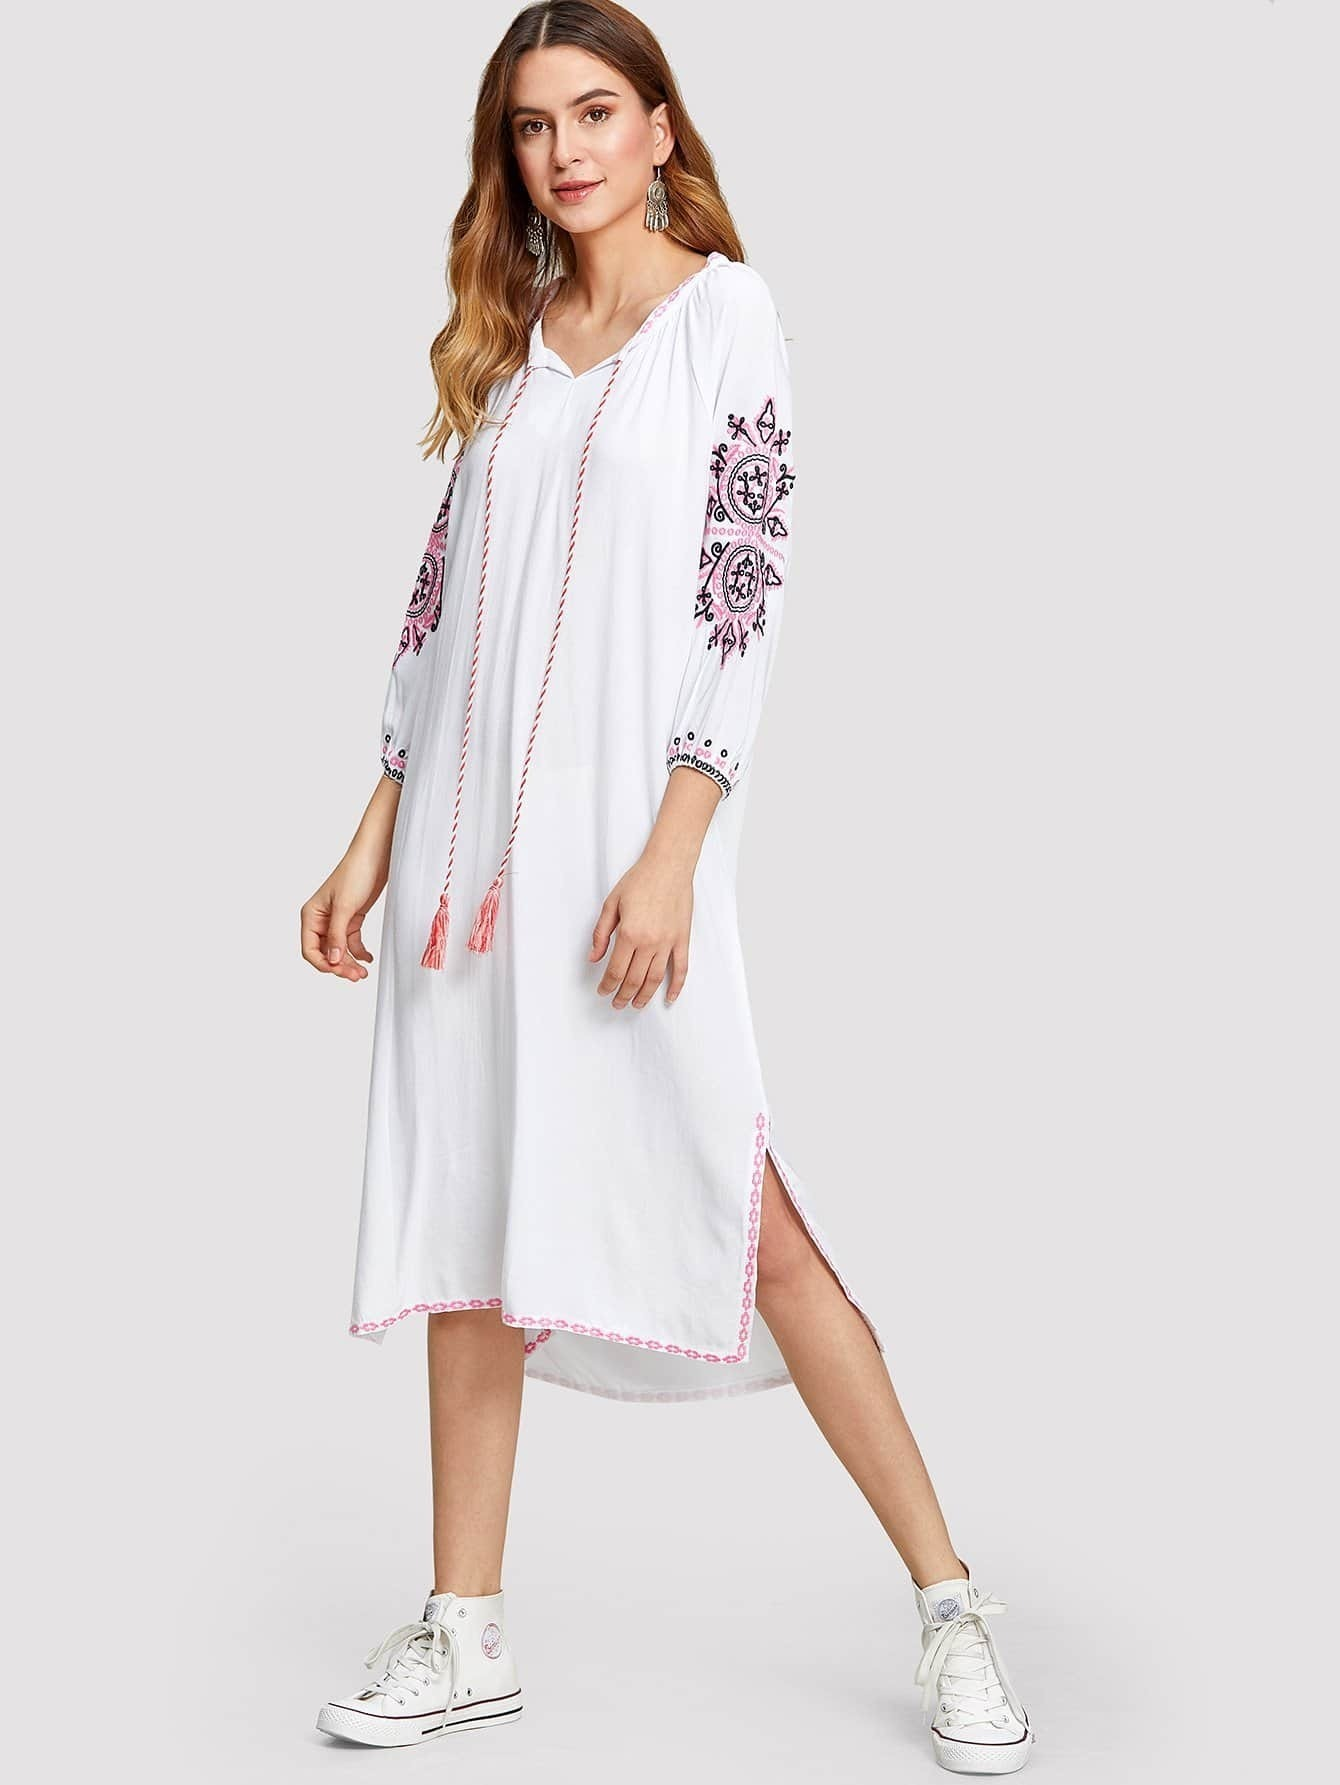 Tassel Detail Split Side Embroidered Dress split side embroidered applique dress